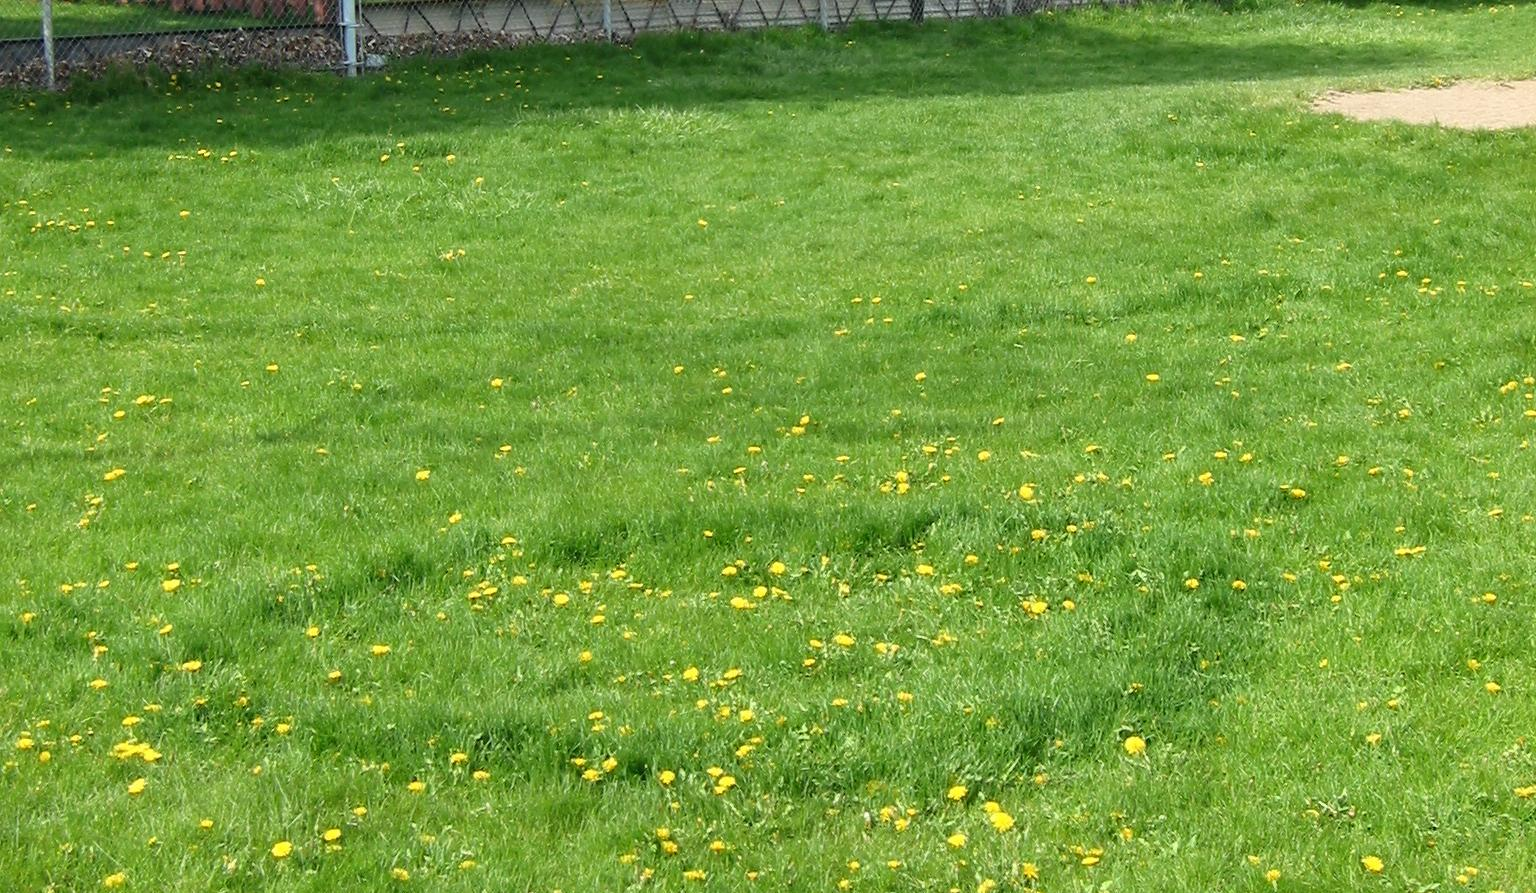 Fairy ring disease is common in all cool season grass species.